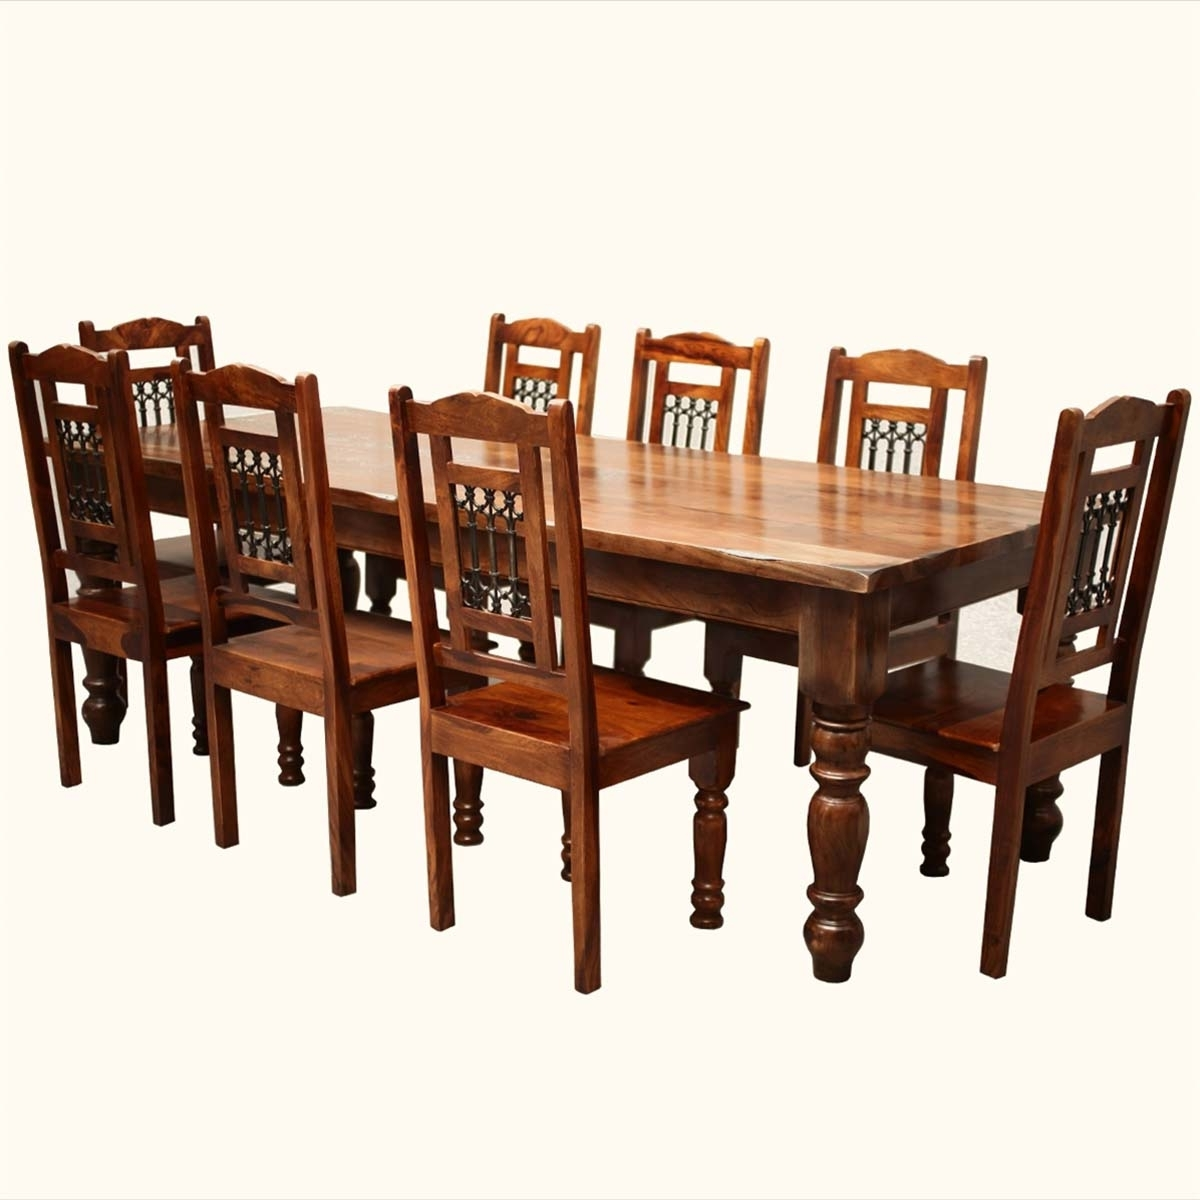 Dining Tables And 8 Chairs Sets Regarding Famous 8 Chair Dining Table Sets Gallery Dining, Dining Table Set 8 Chairs (View 9 of 25)